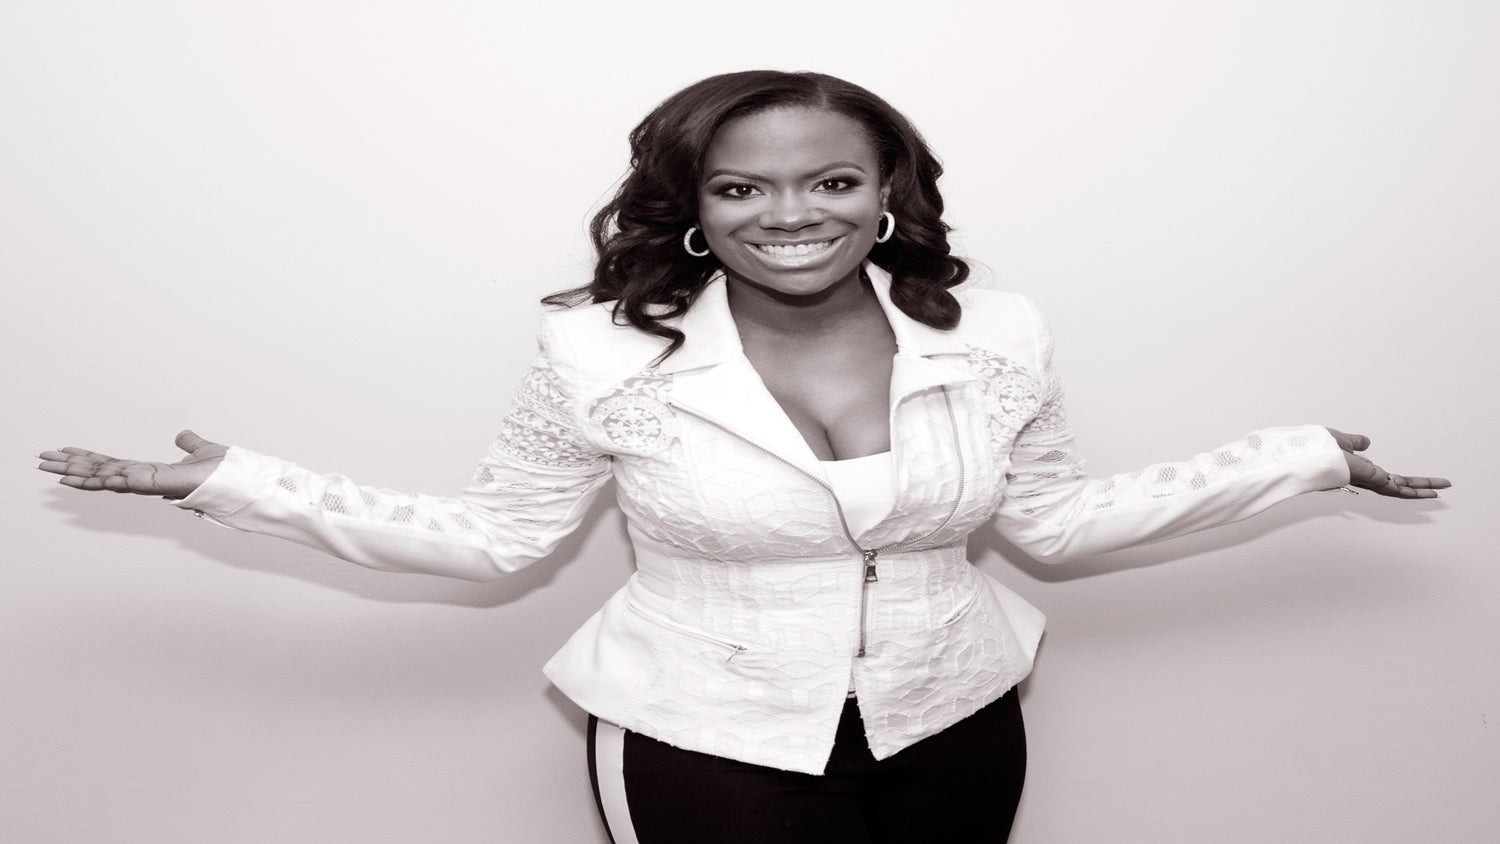 Kandi Burruss Brings Out the Boss in All of Us